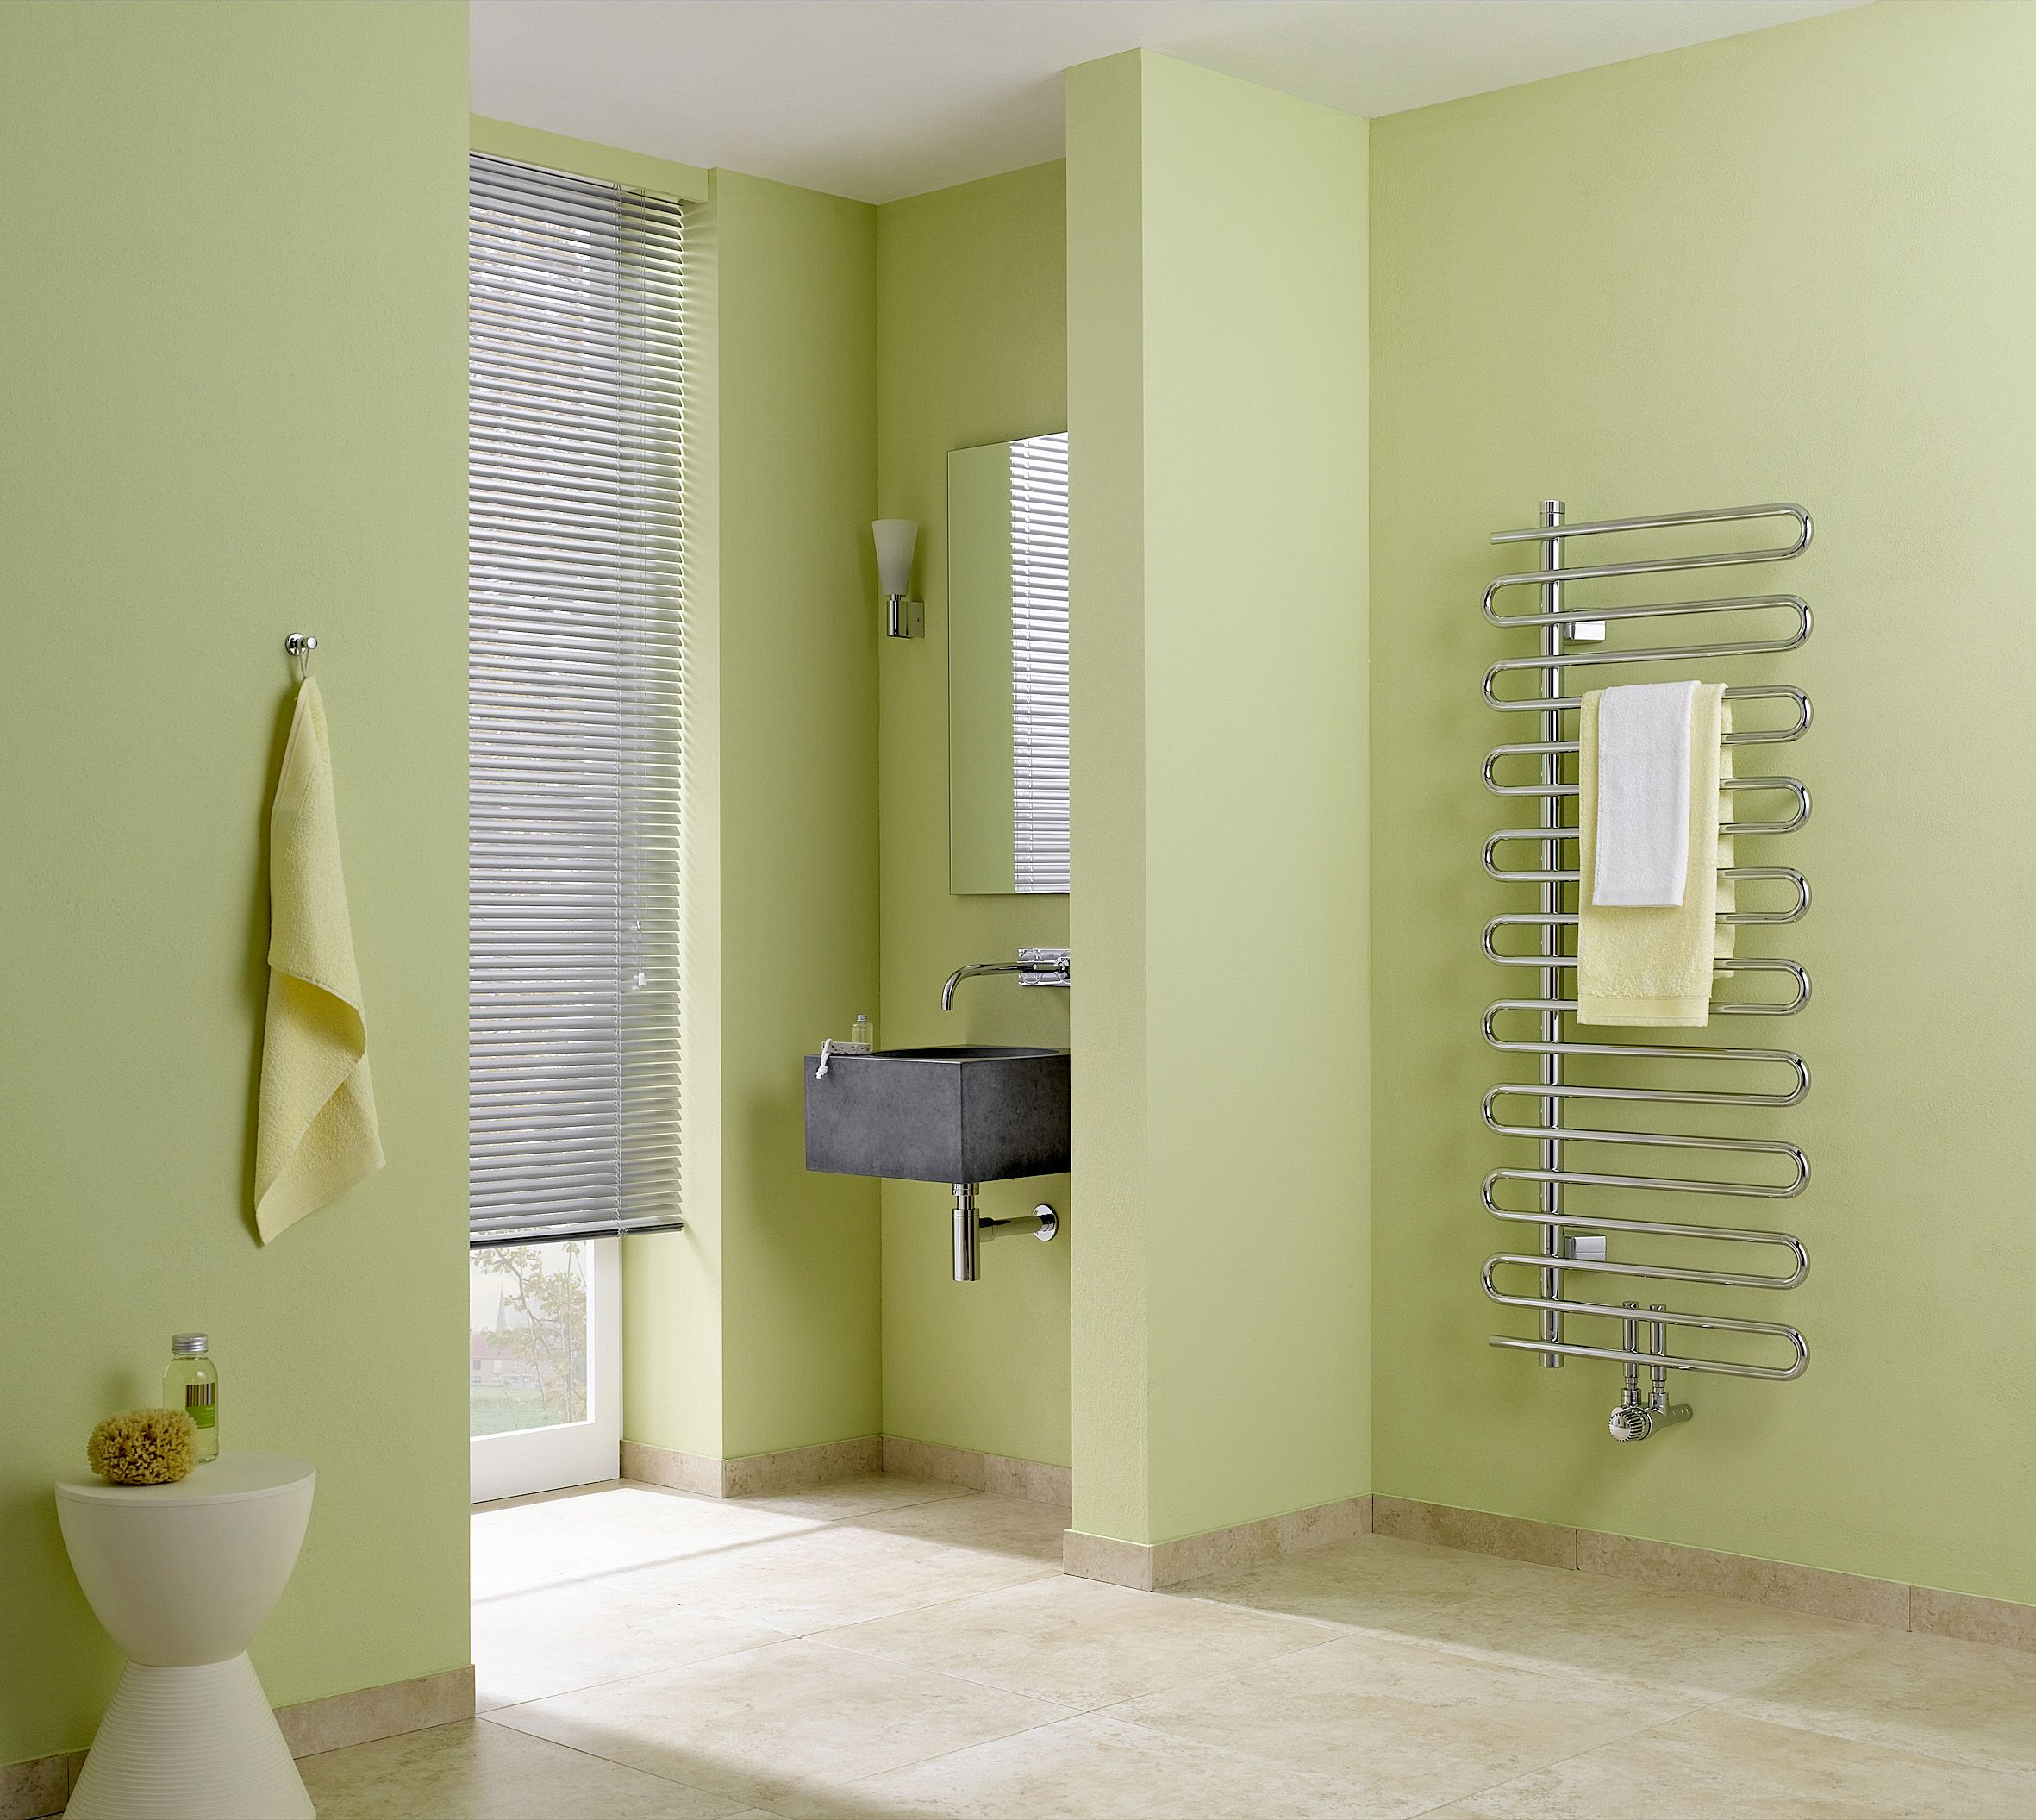 Another great towel rail that goes well